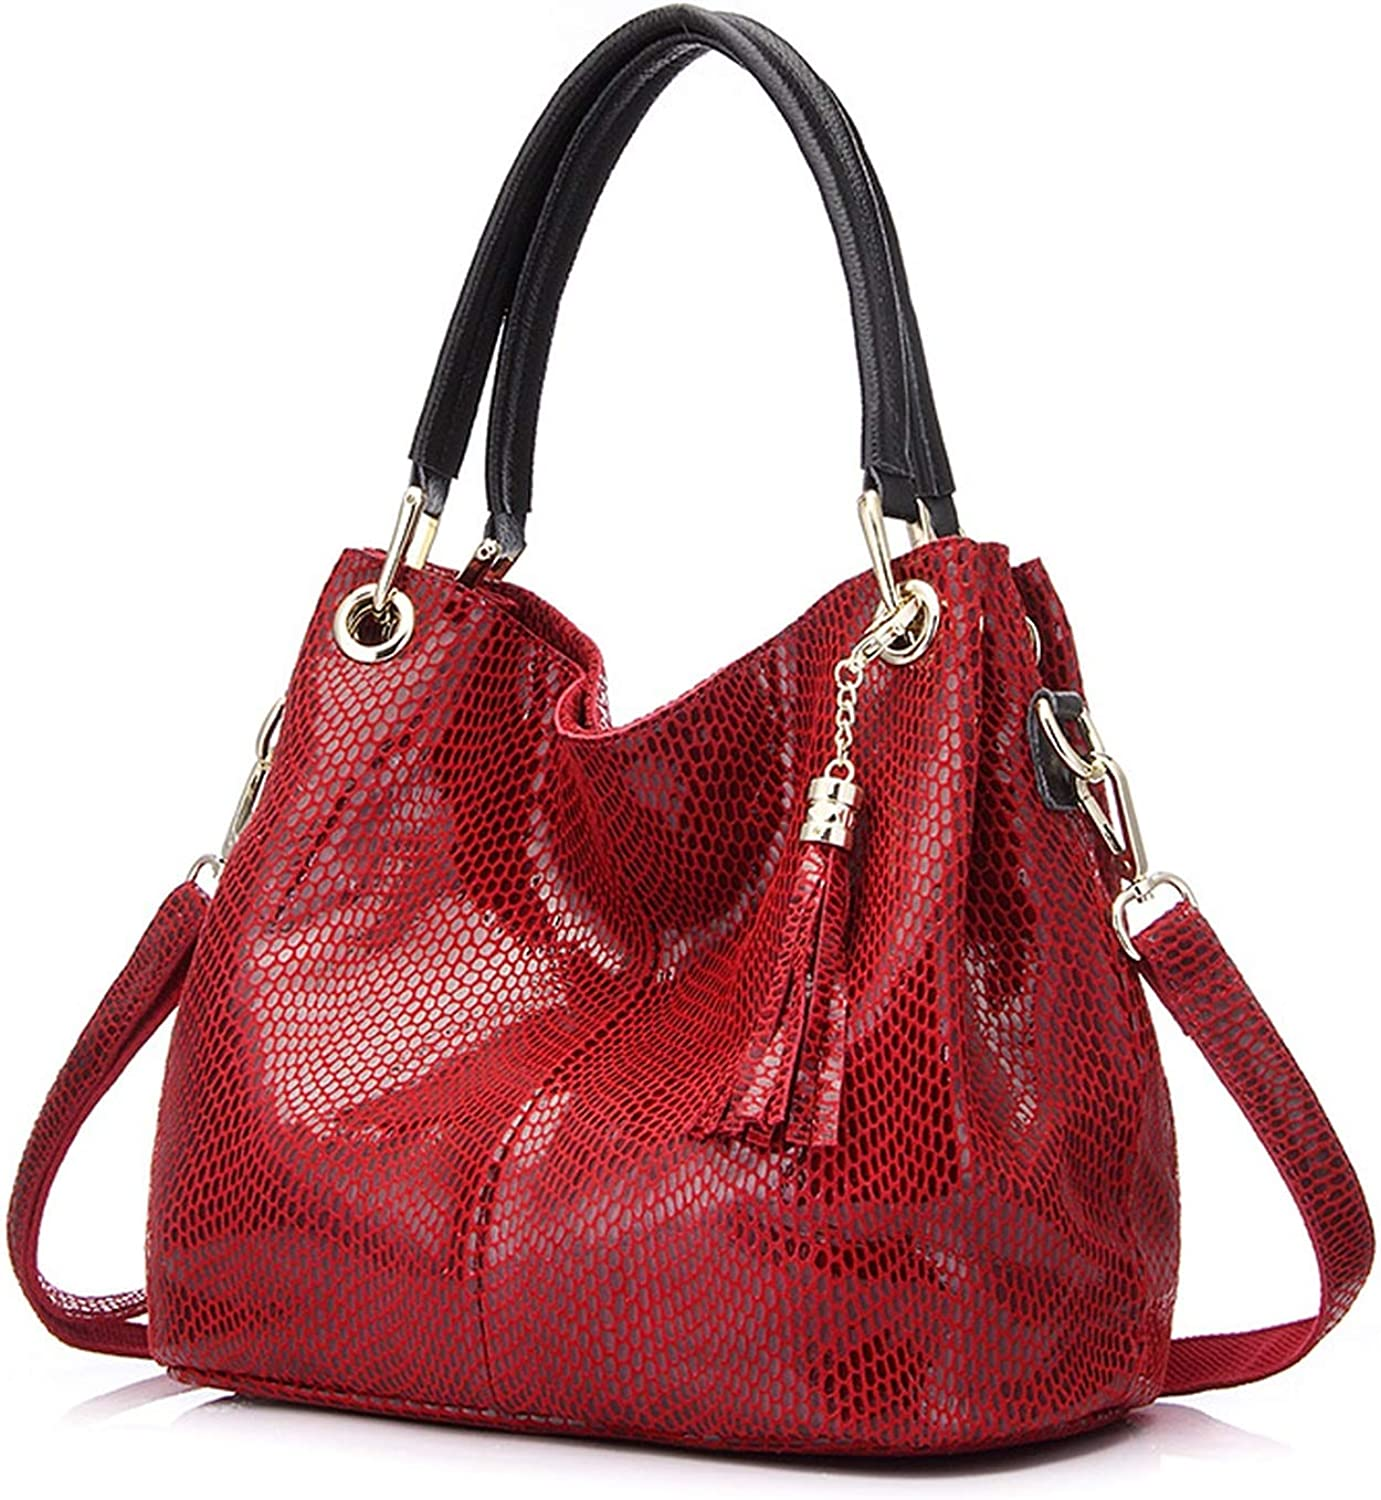 Female hobos shoulder crossbody bags leather totes women,red,(30cmMax Length50cm)